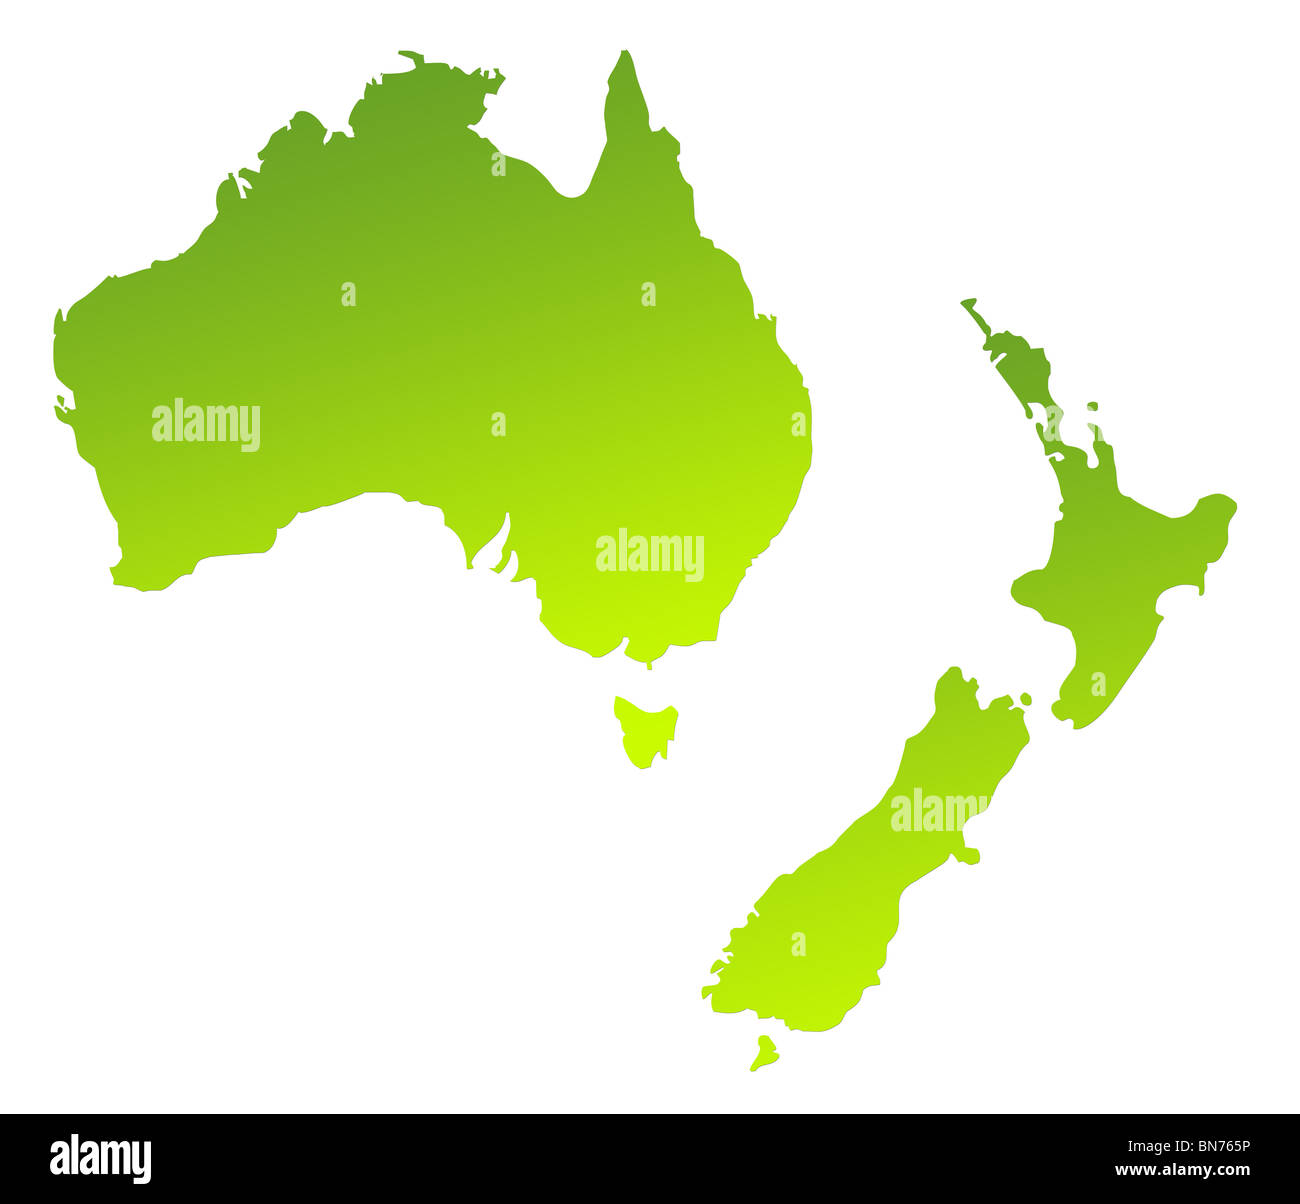 Green gradient map of Australia and New Zealand isolated on a white background. - Stock Image